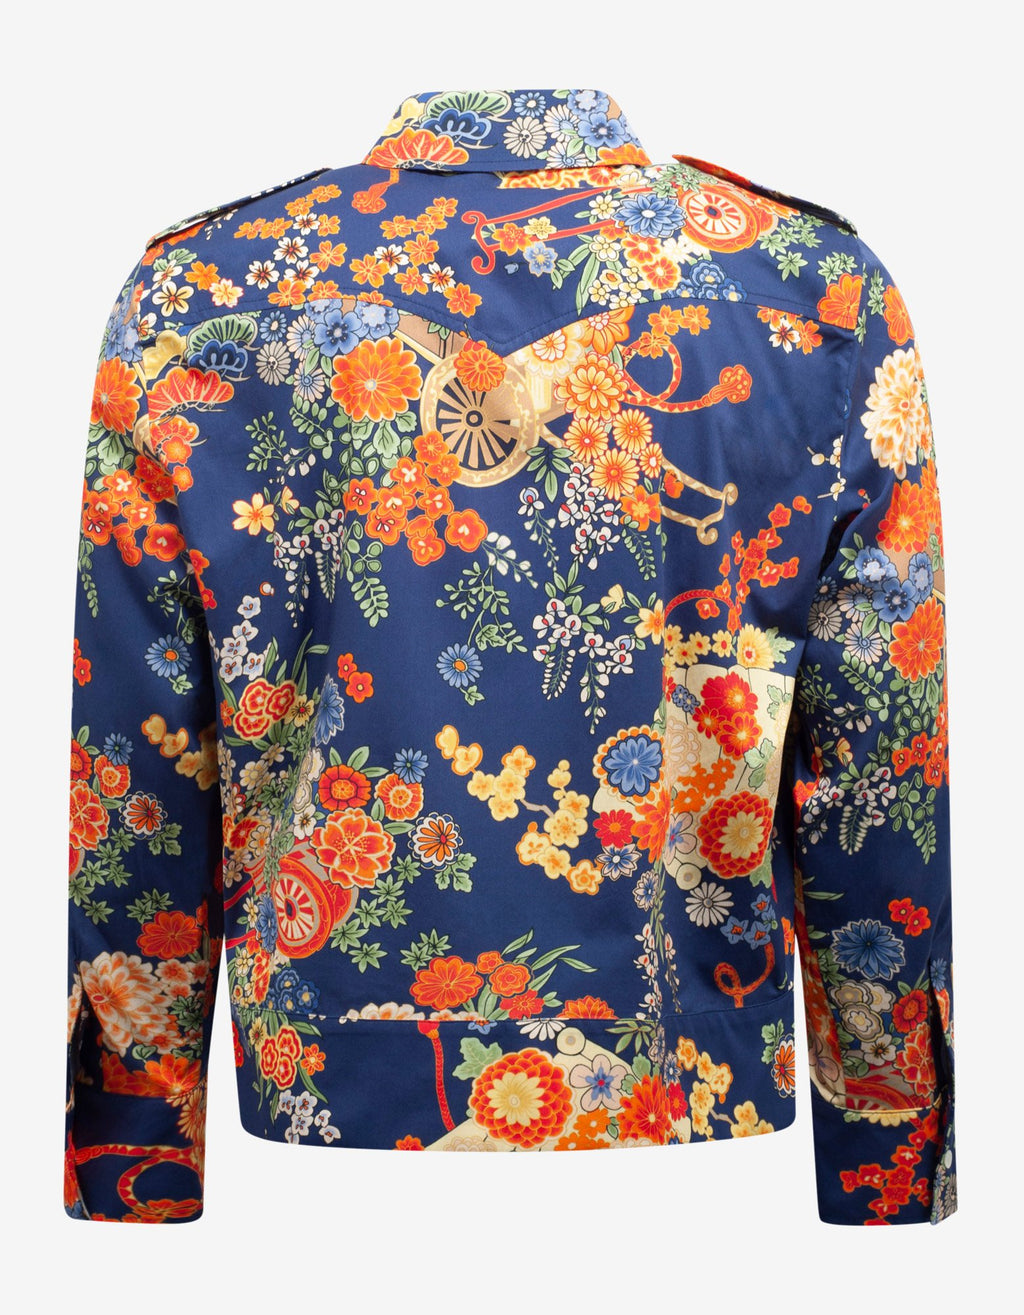 Blue Floral Print Blooming Pocket Shirt -